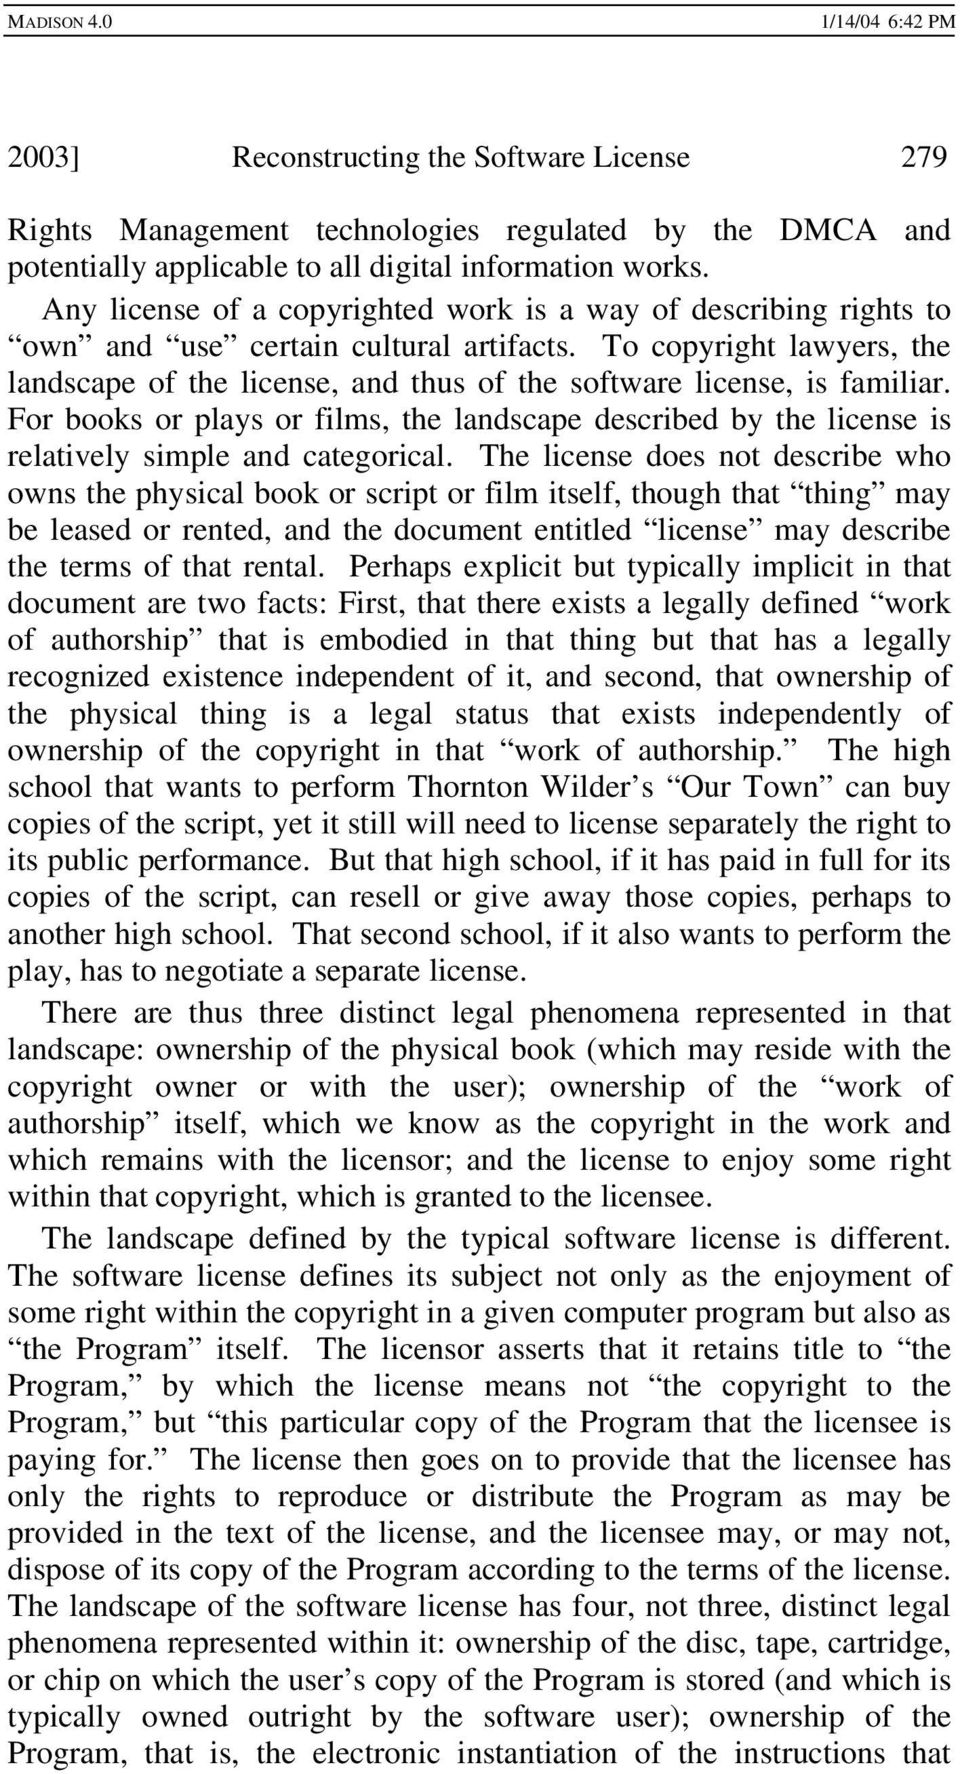 To copyright lawyers, the landscape of the license, and thus of the software license, is familiar.